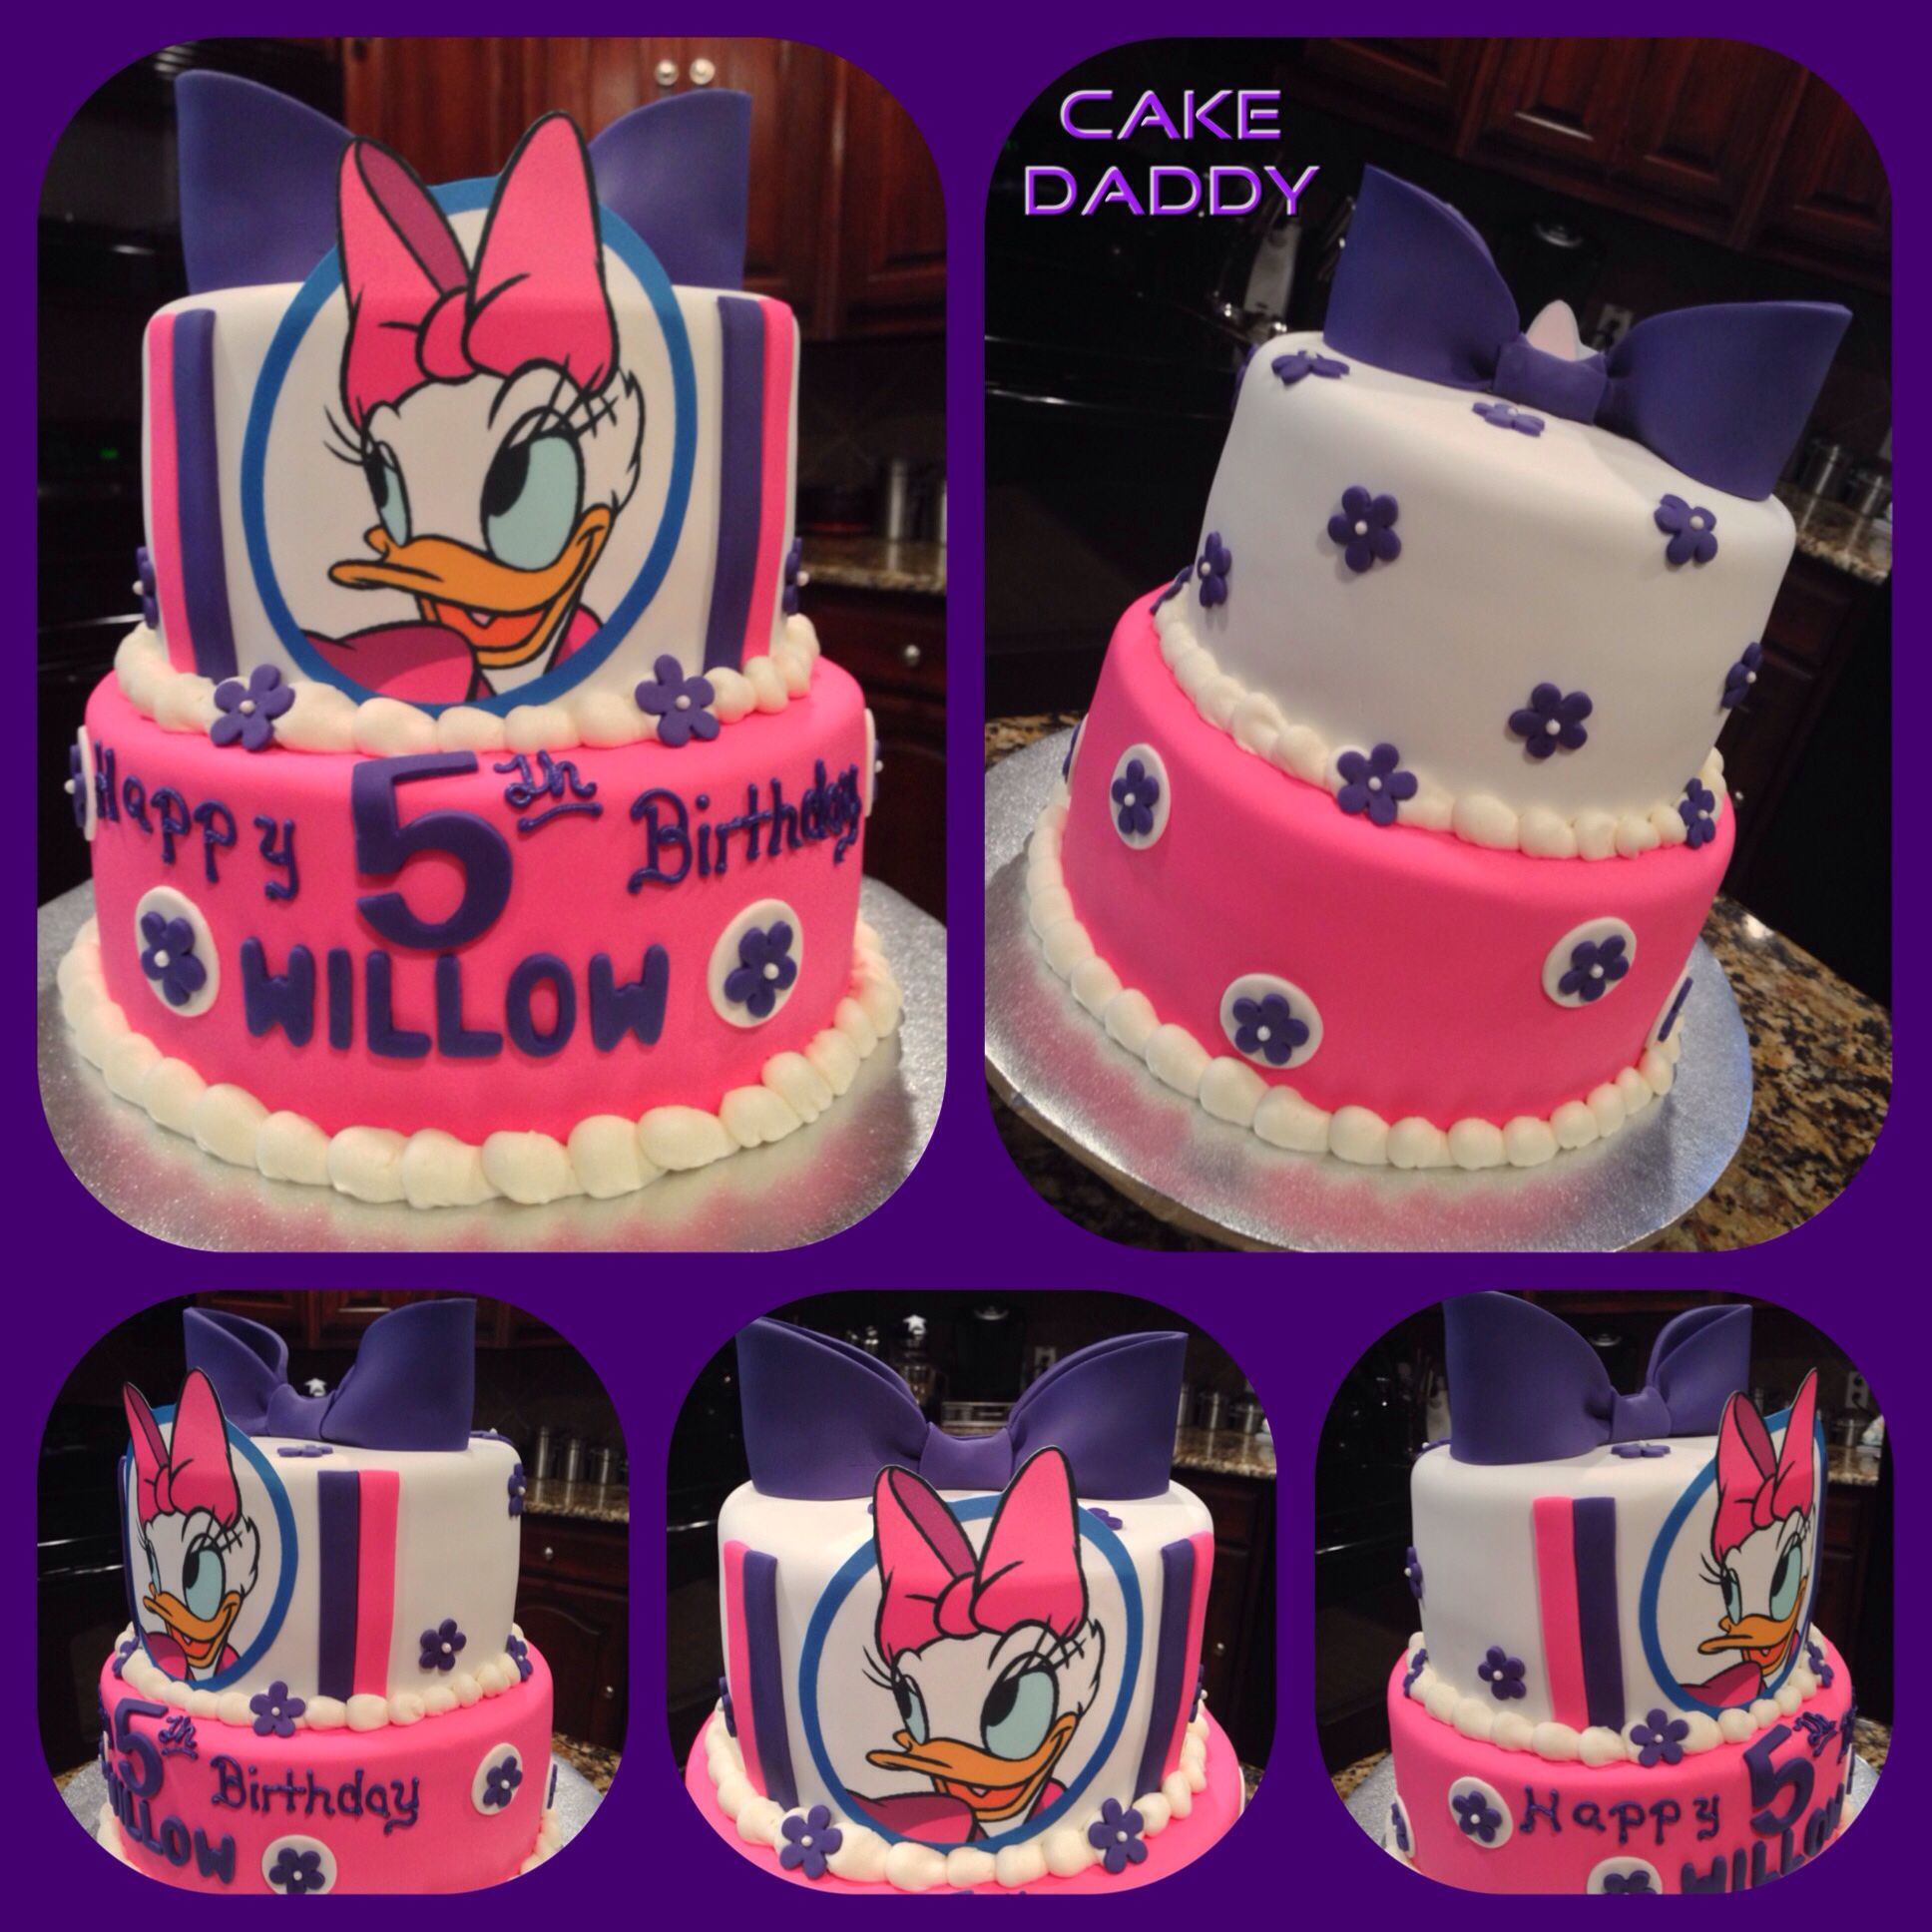 Tremendous Pin By Monica On Food Birthday Daisy Duck Party Daisy Duck Cake Personalised Birthday Cards Paralily Jamesorg